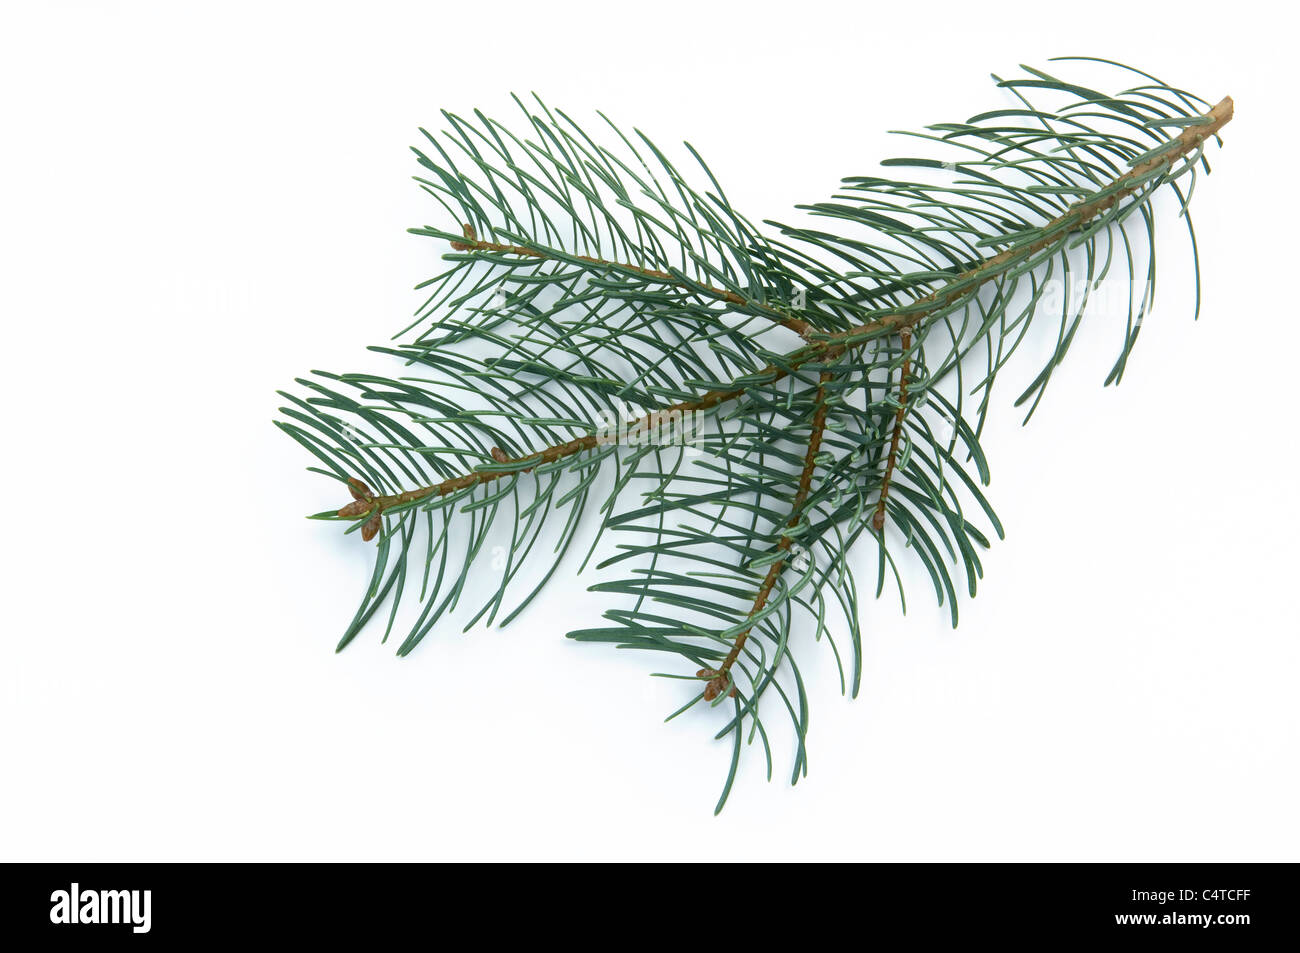 Colorado Fir, White Fir (Abies concolor), twig. Studio shot against a white background. - Stock Image